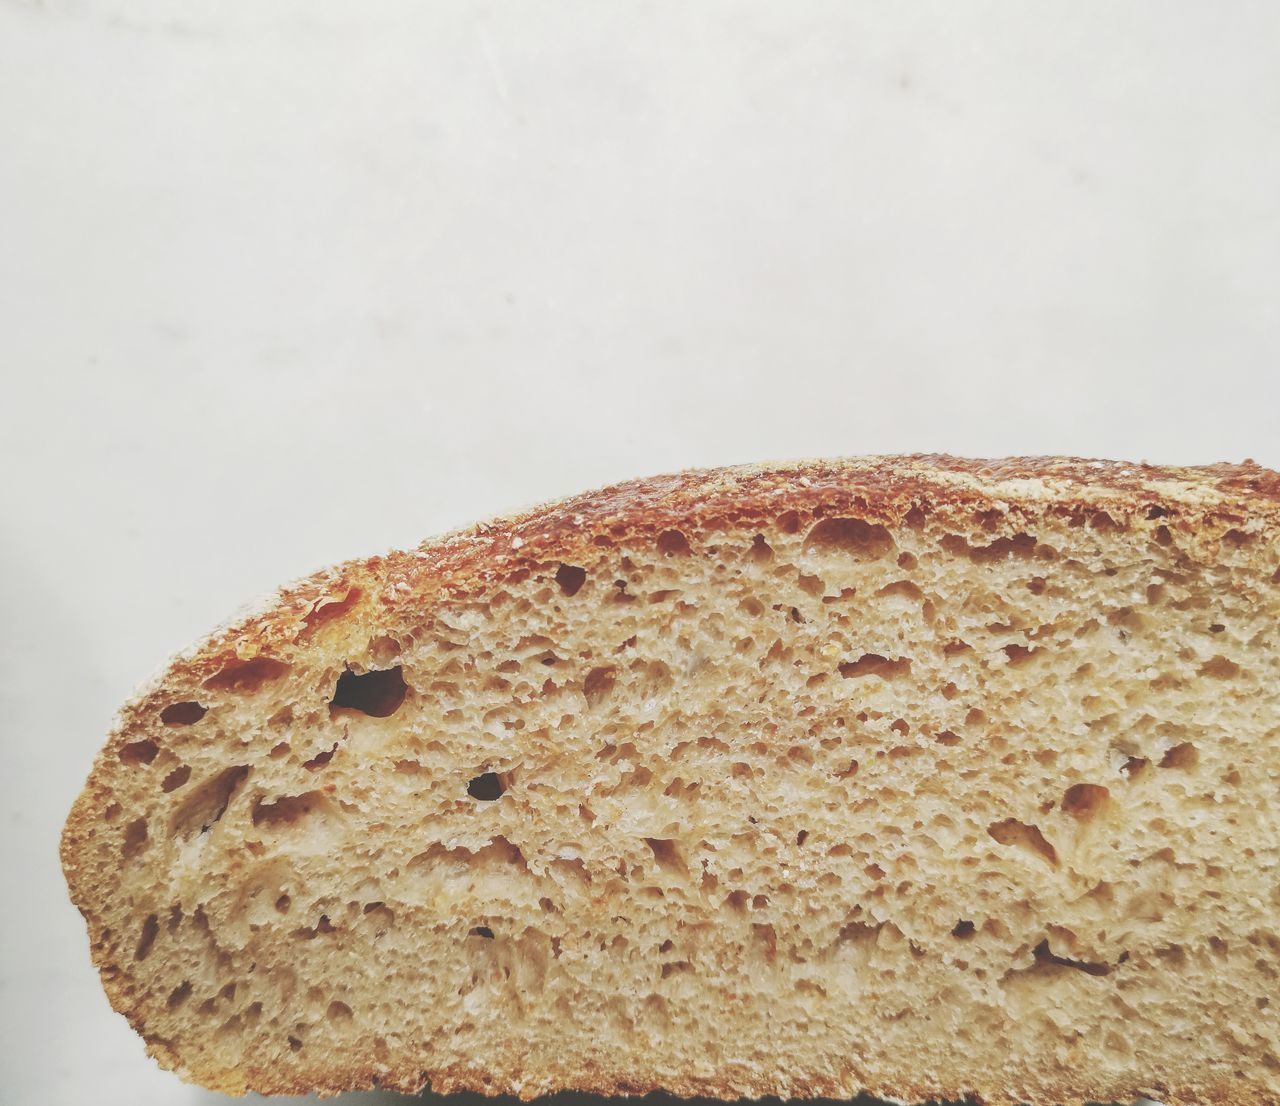 CLOSE-UP OF BREAD ON WHITE TABLE